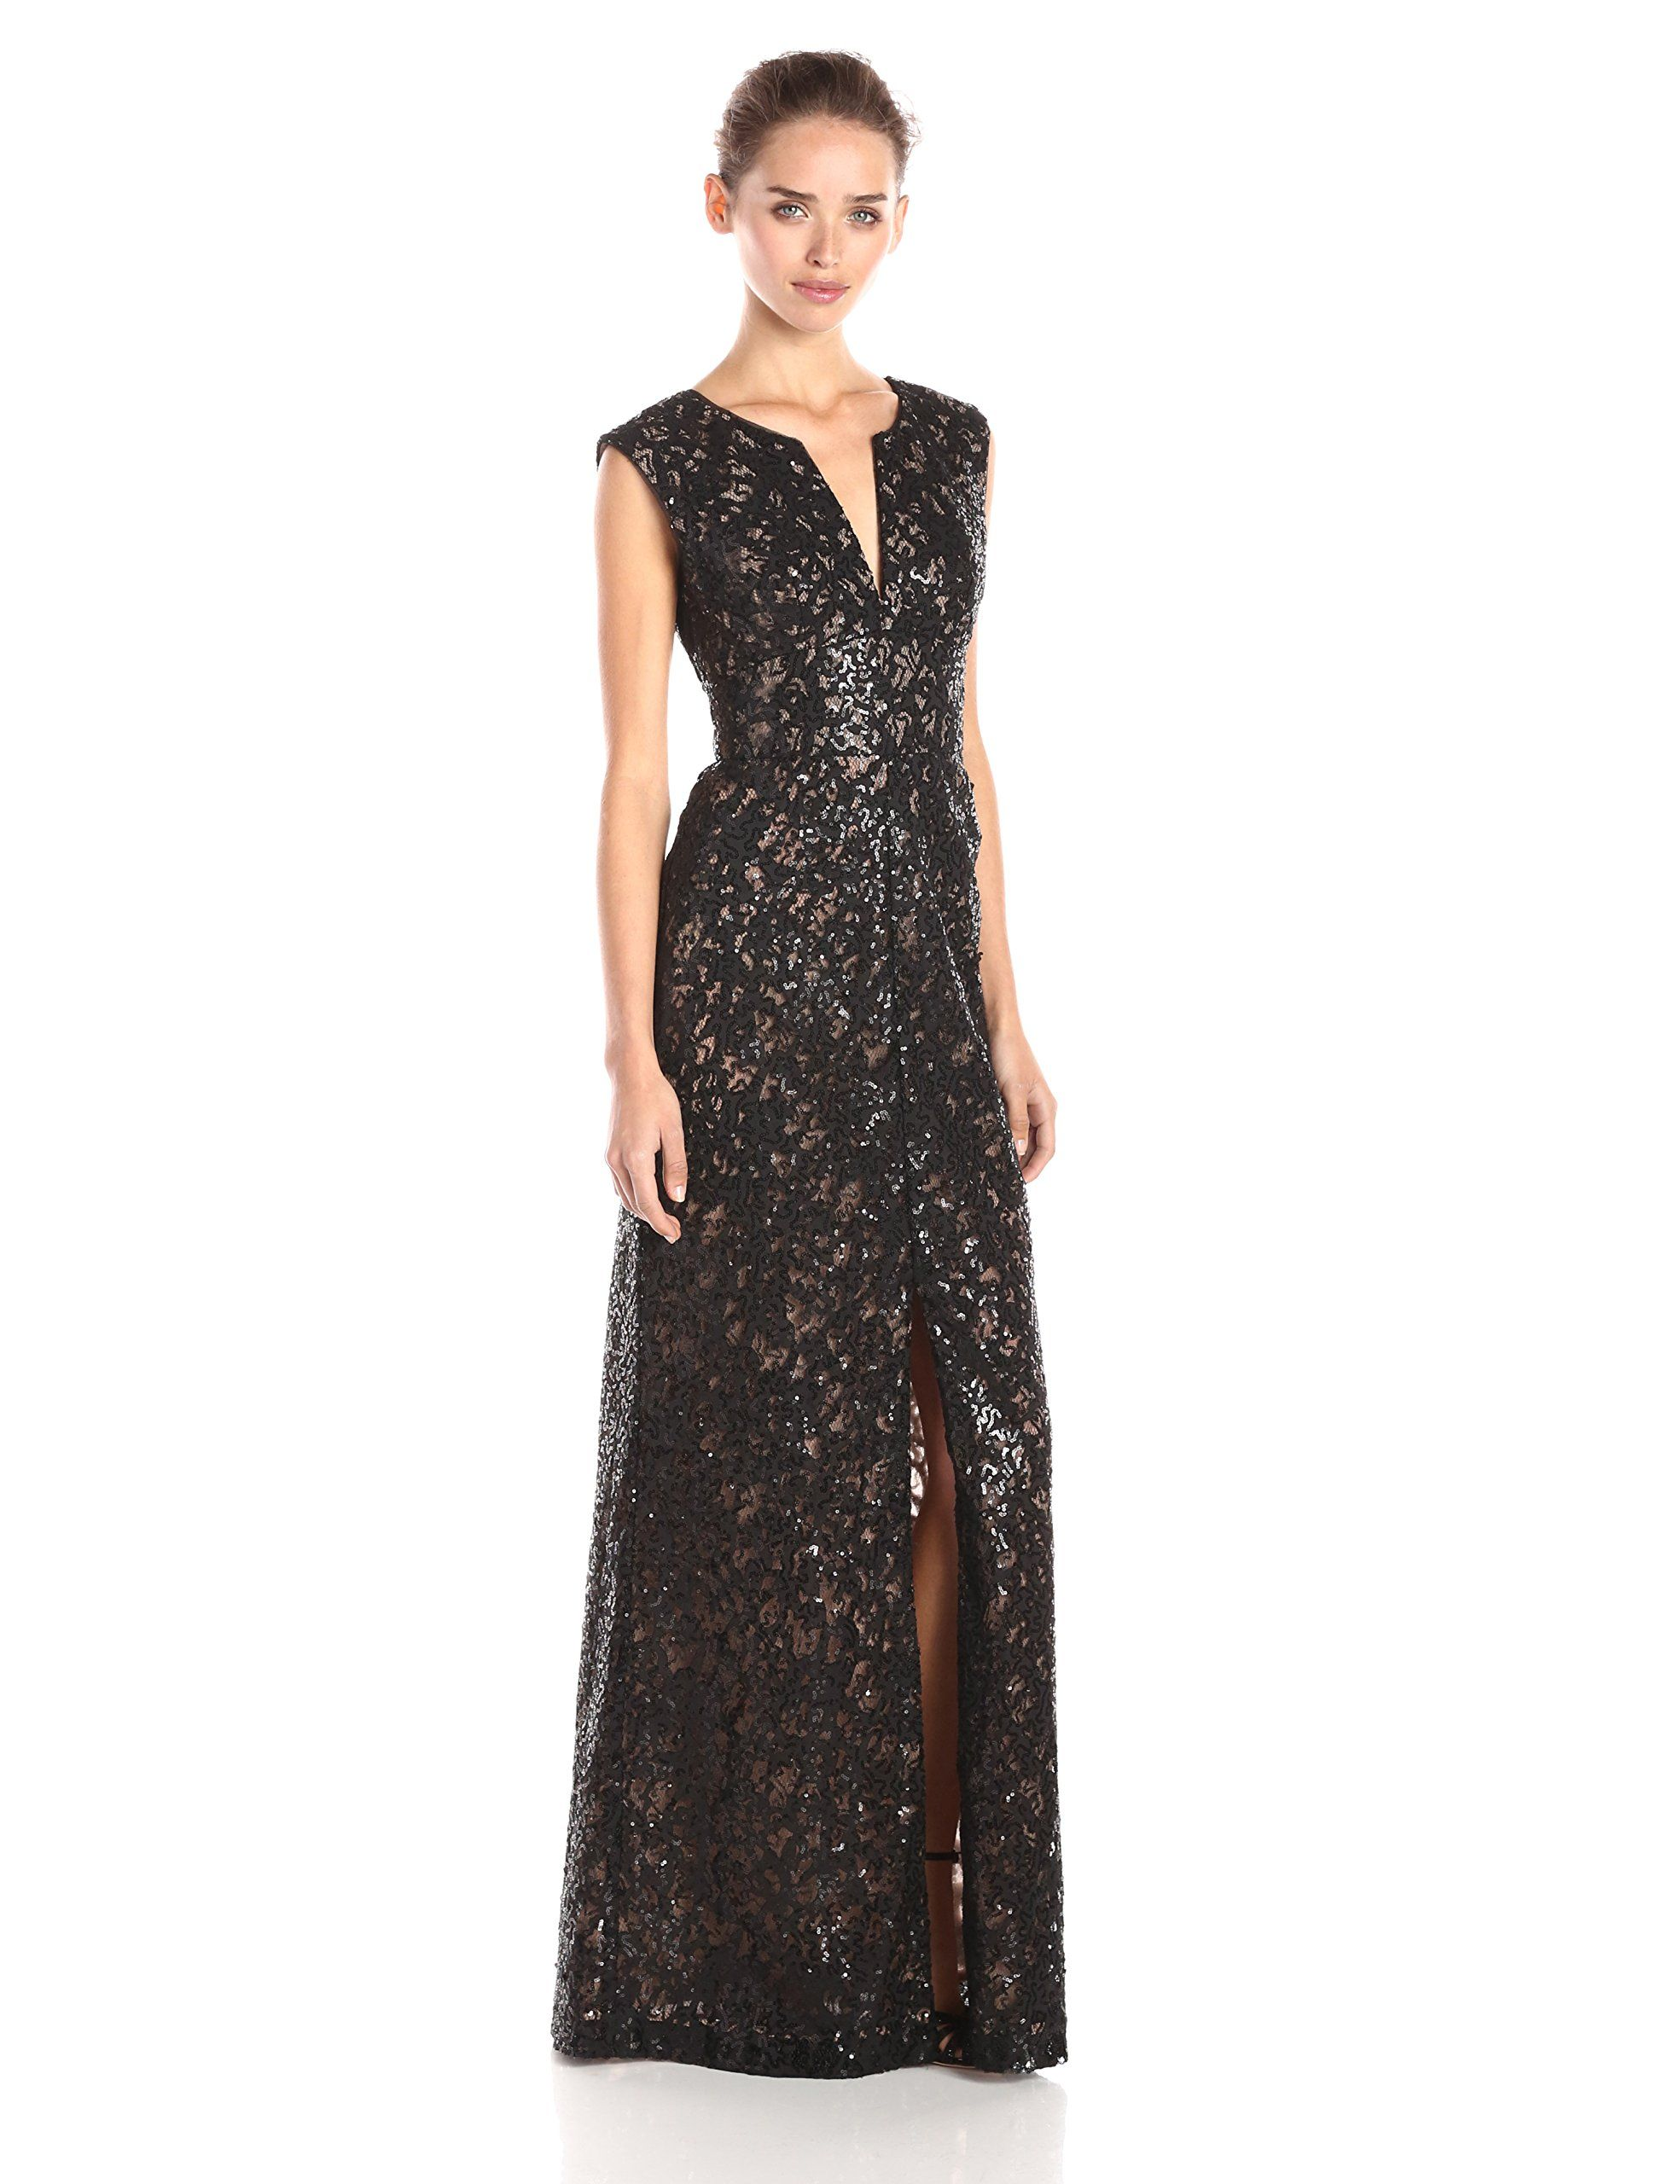 Bcbgmax azria womenus cain applique sequined long gown black